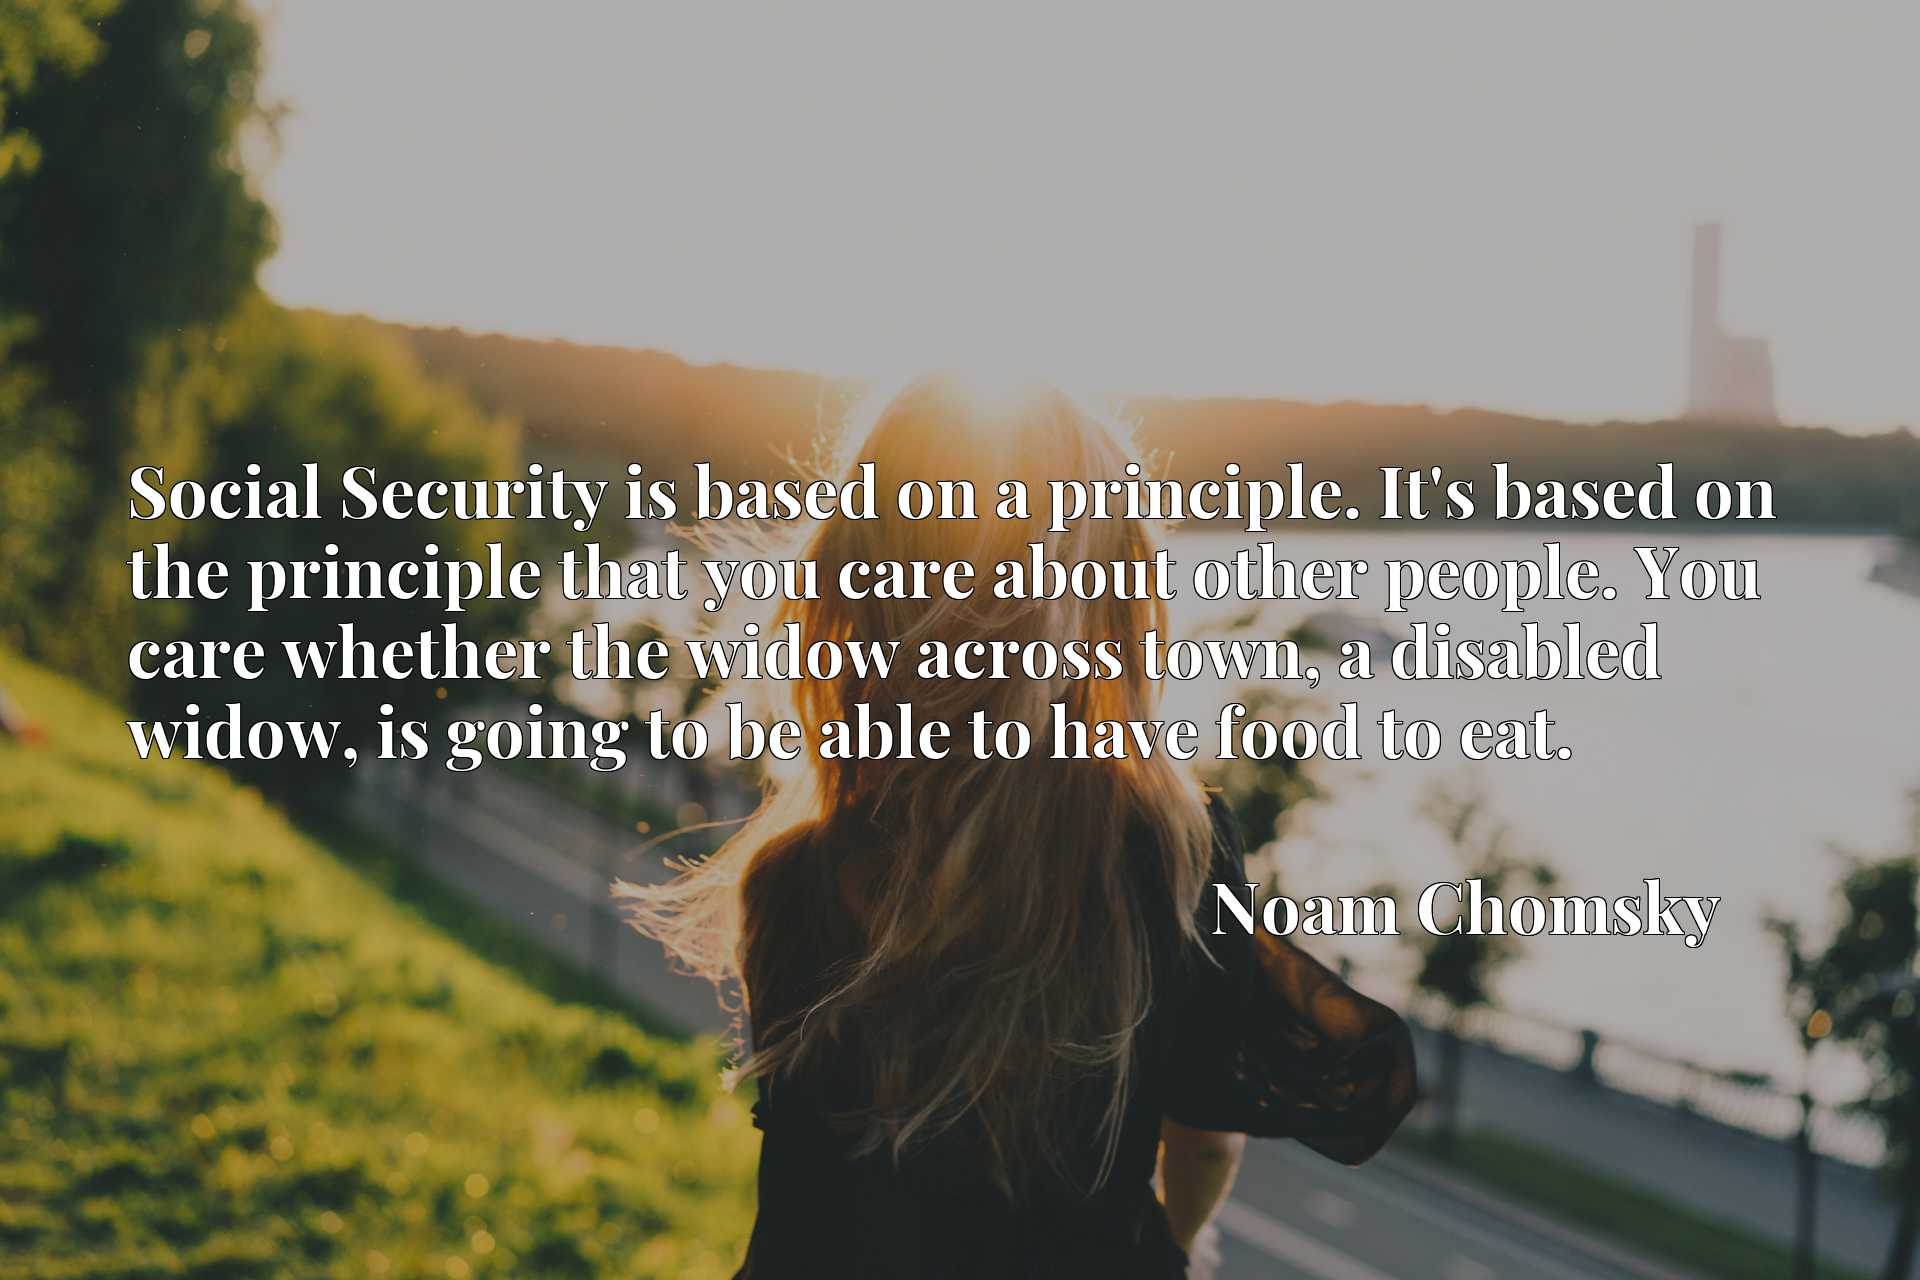 Social Security is based on a principle. It's based on the principle that you care about other people. You care whether the widow across town, a disabled widow, is going to be able to have food to eat.